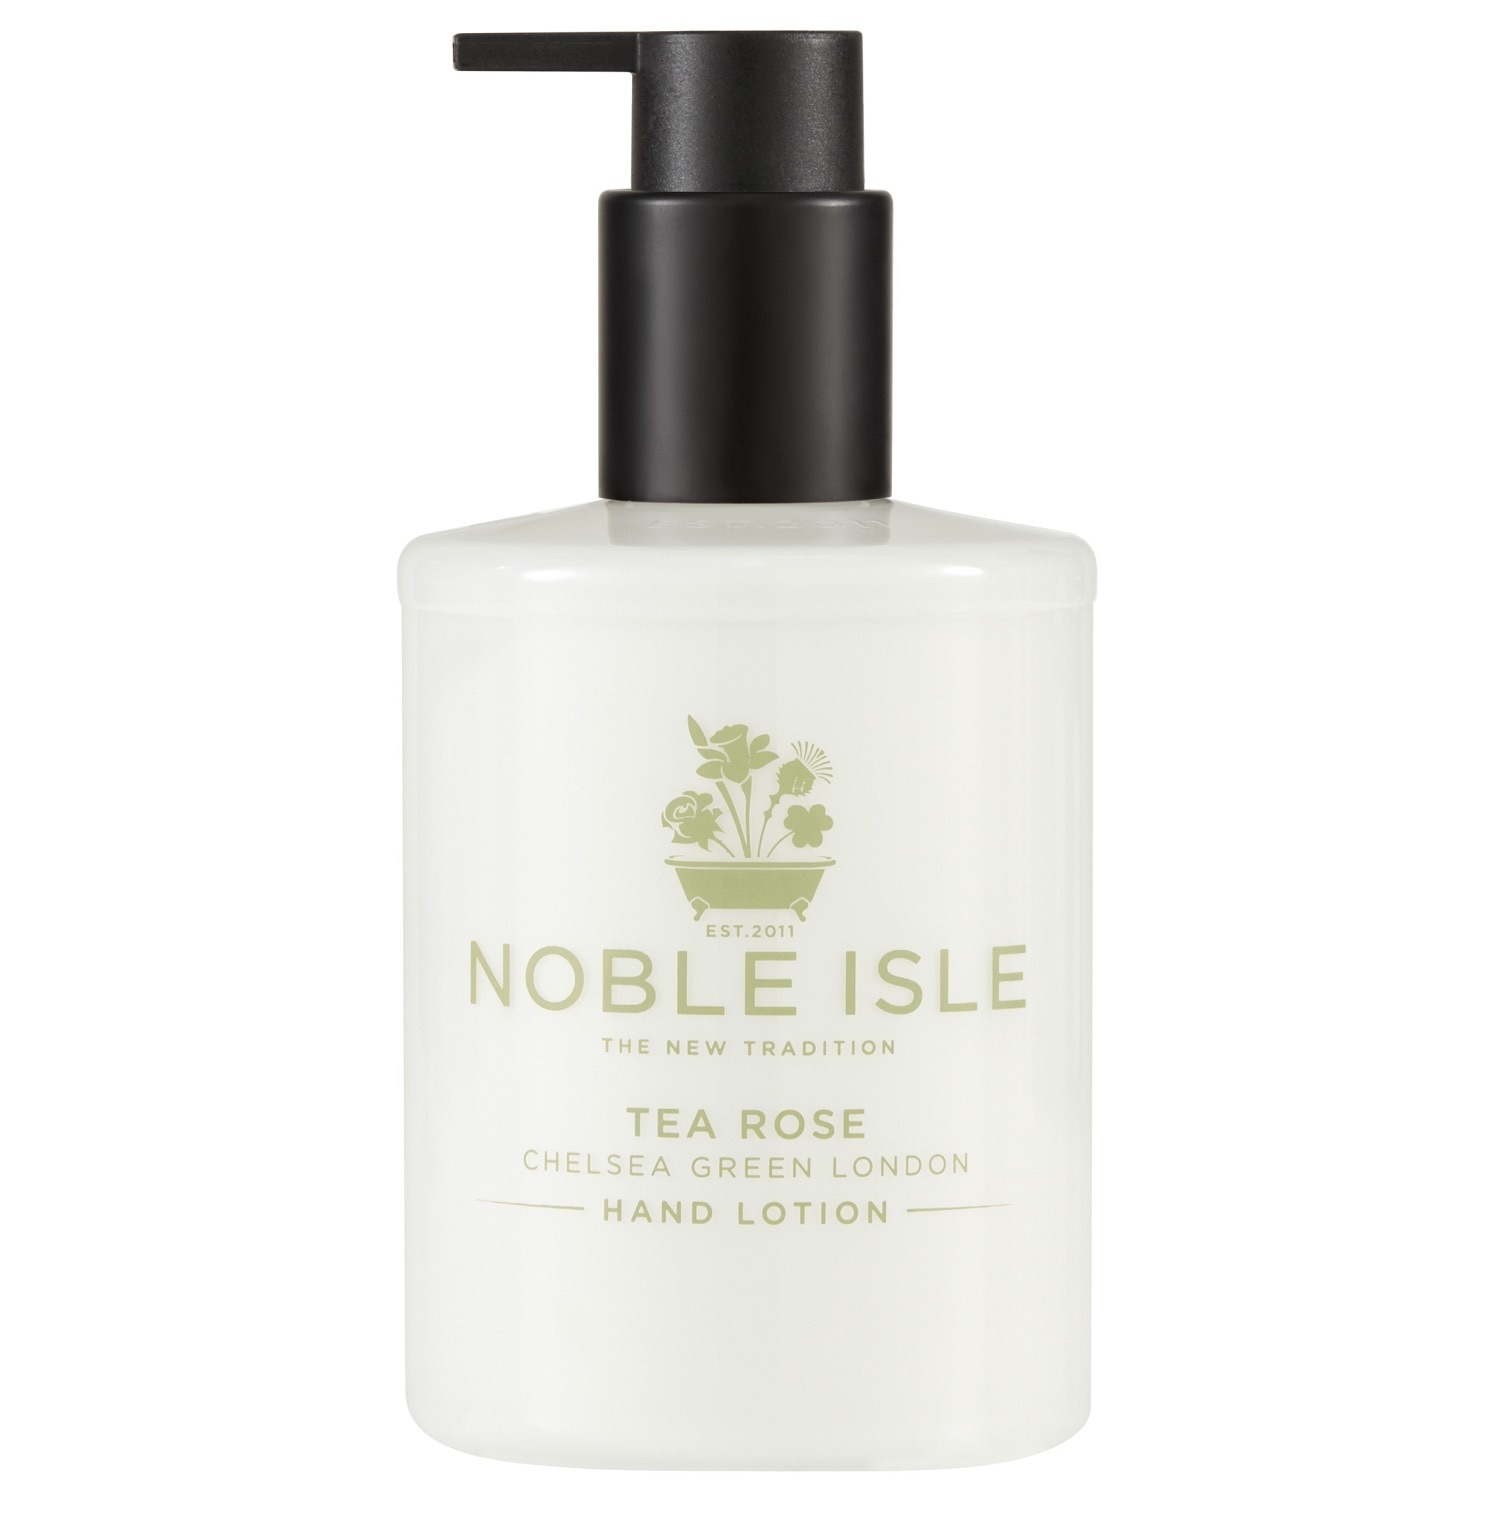 Noble Isle Tea Rose Hand Lotion 8.4oz (250ml)